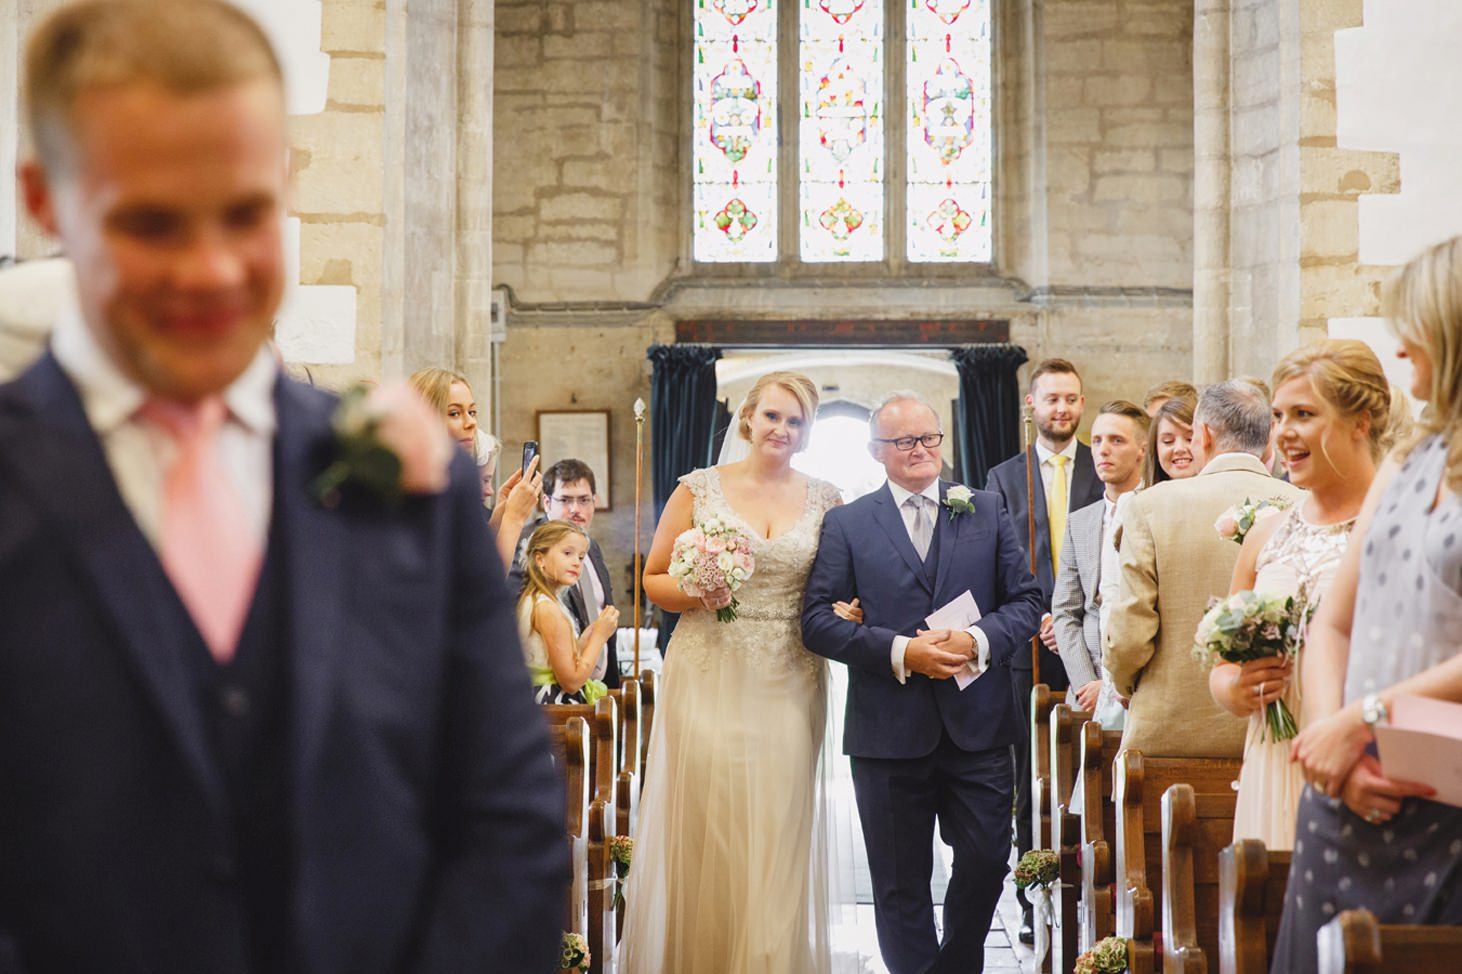 oxfordshire wedding photography bride walking down the aisle